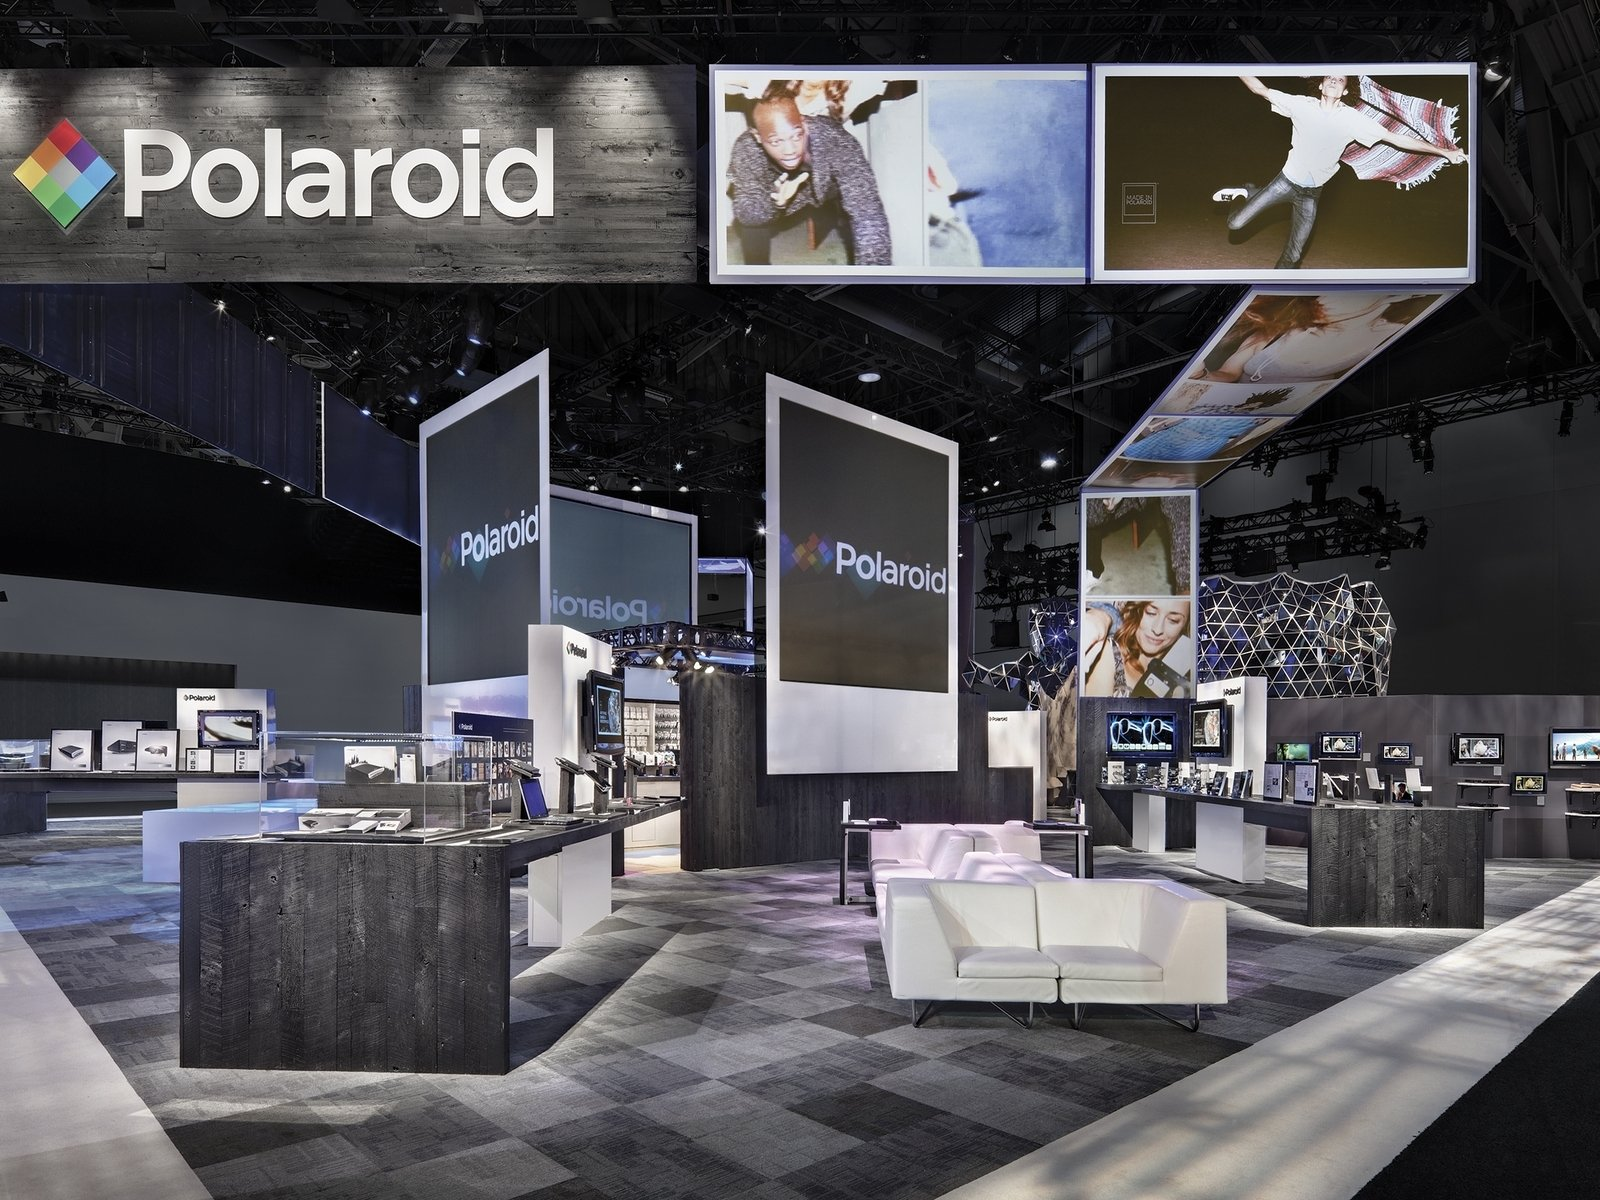 10 Fashionable Creative Trade Show Booth Ideas exhibit design ideas inspiration trade show displays 1